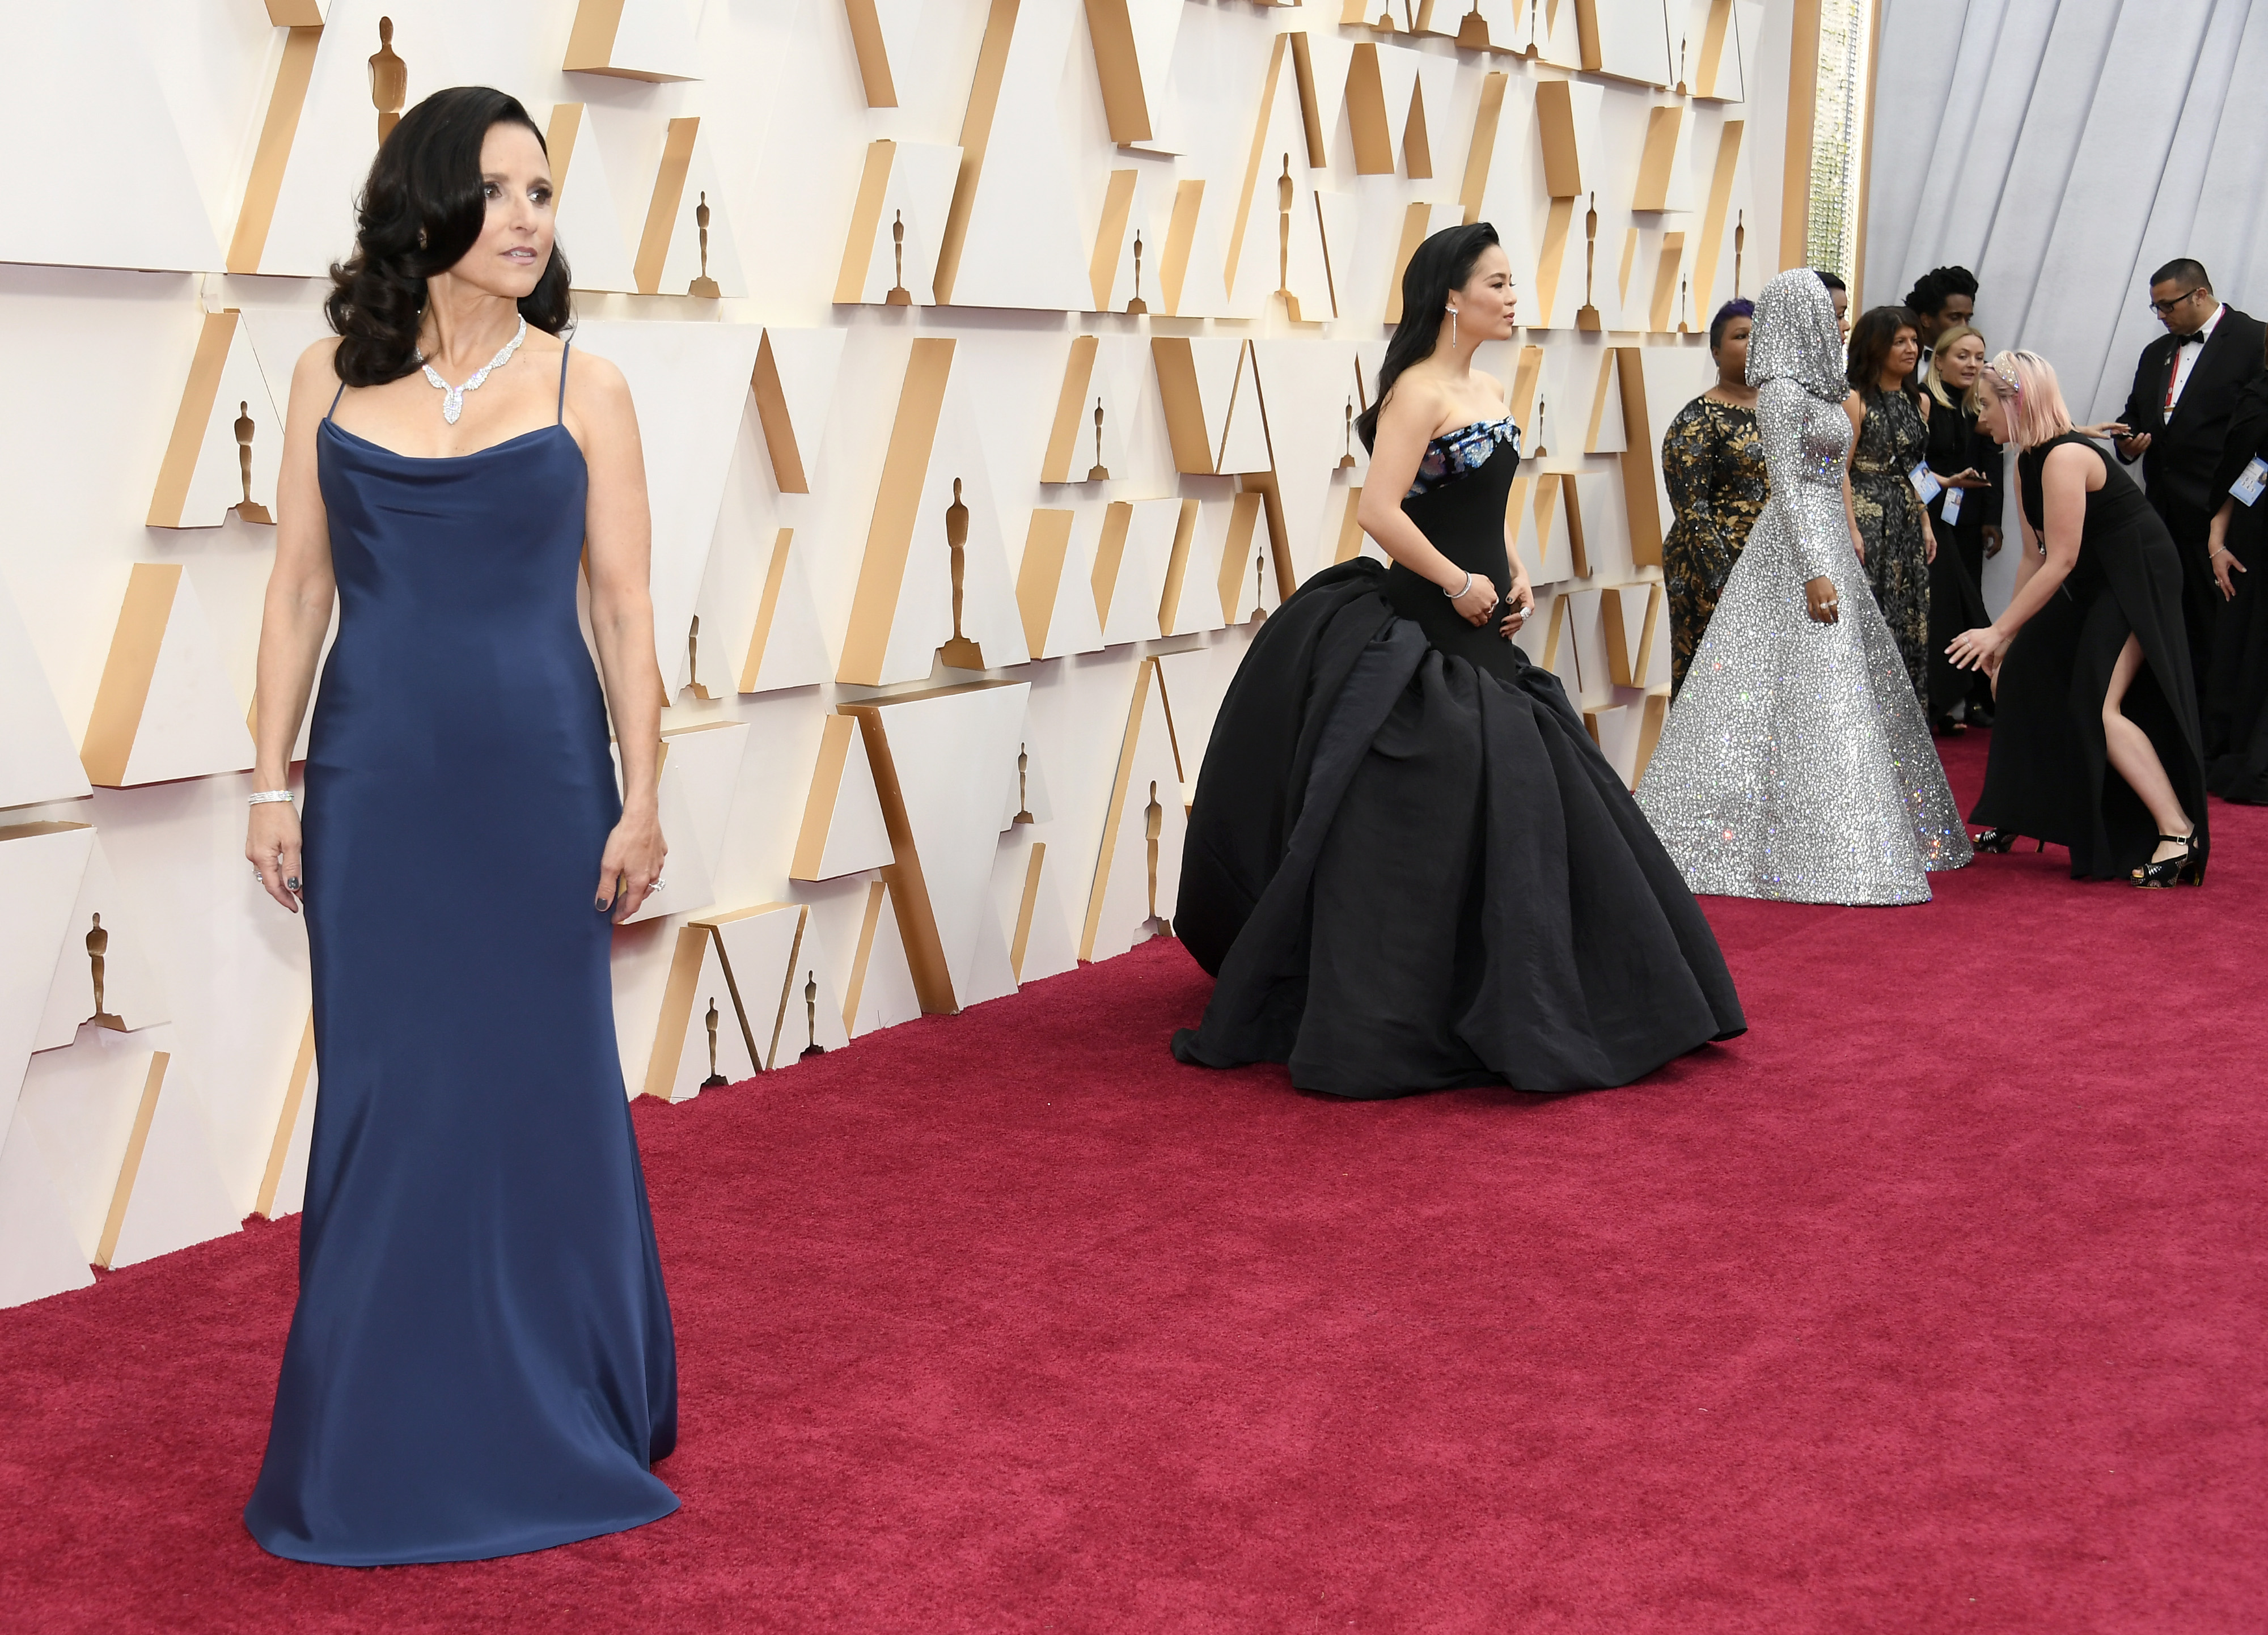 HOLLYWOOD, CALIFORNIA - FEBRUARY 09: Julia Louis-Dreyfus attends the 92nd Annual Academy Awards at Hollywood and Highland on February 09, 2020 in Hollywood, California. (Photo by Kevork Djansezian/Getty Images)